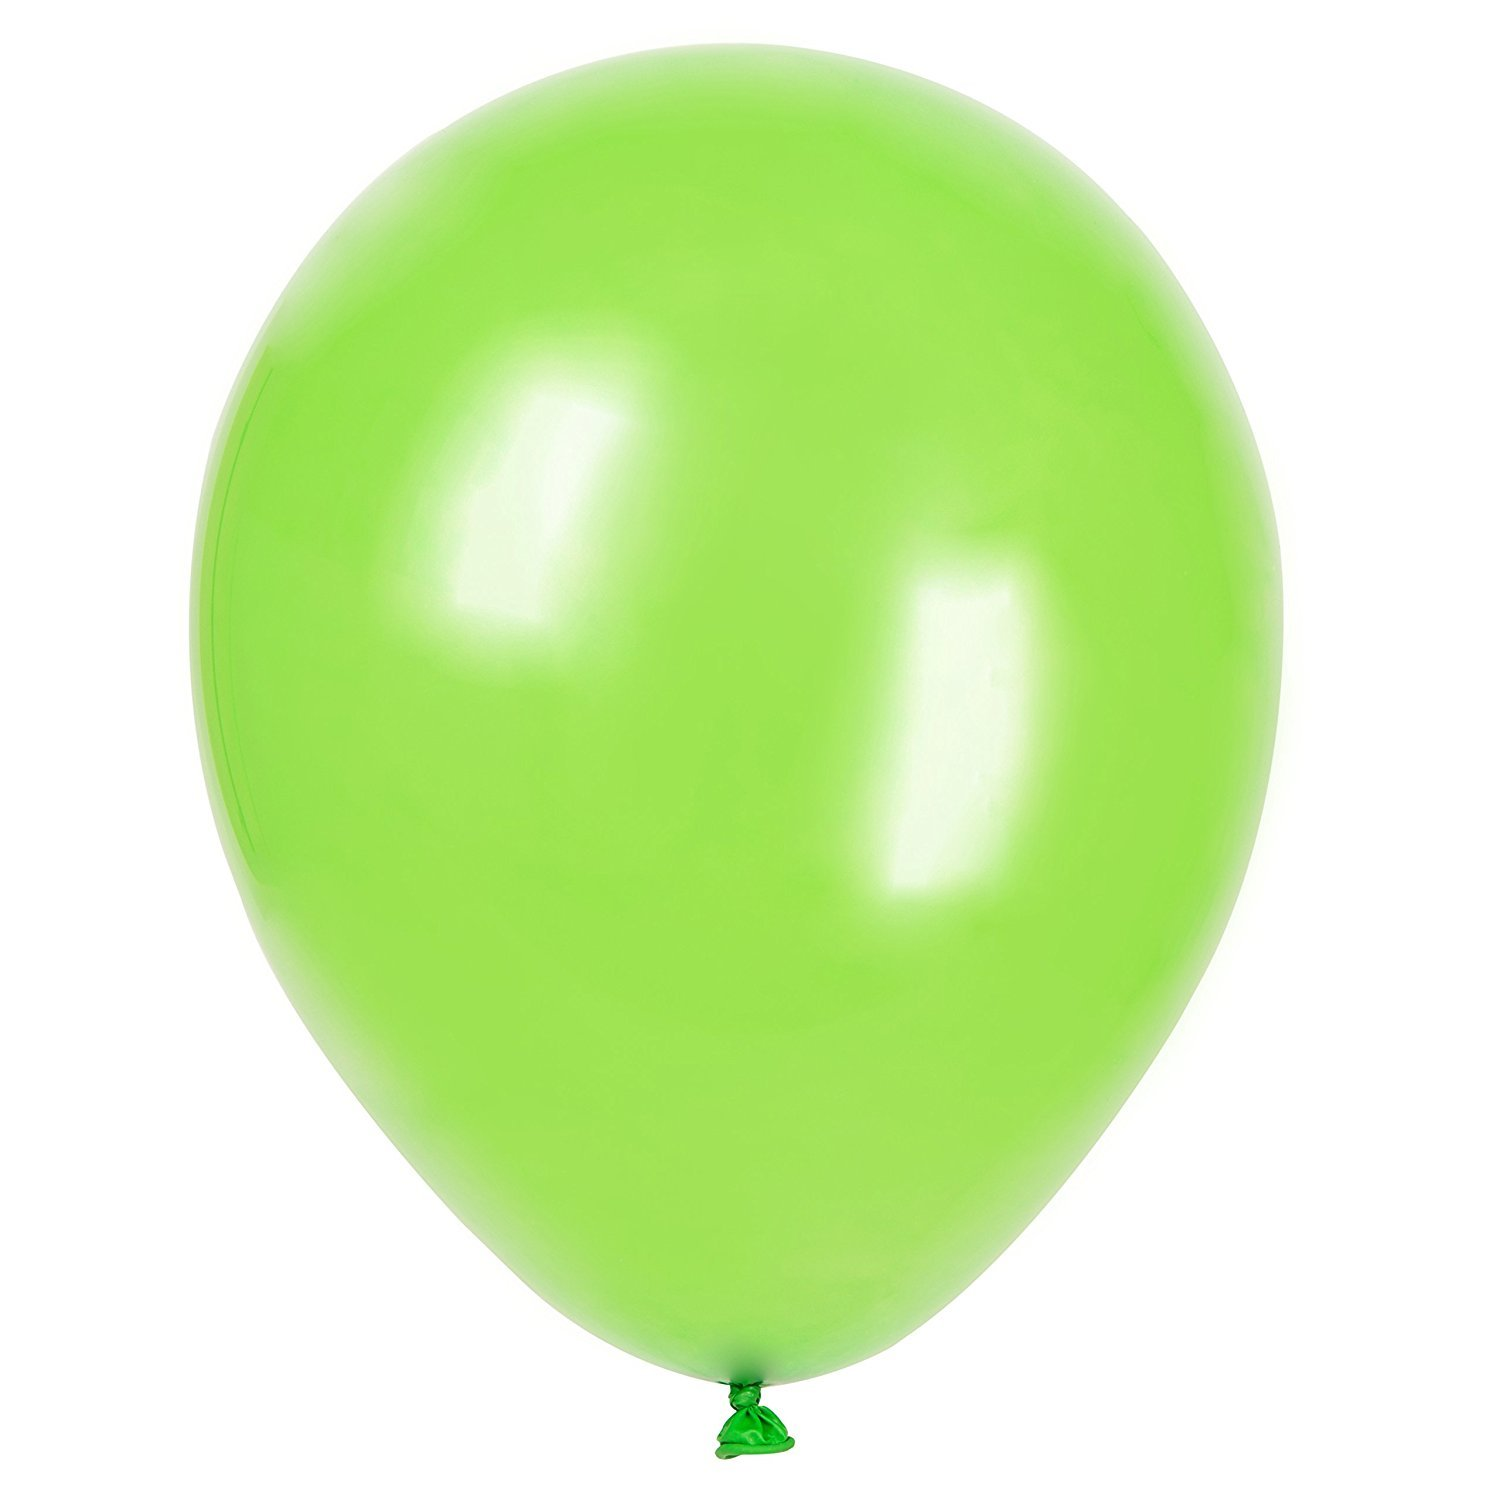 2,000 LIME 12'' Party Balloons BULK WHOLESALE LOT by Chachlili